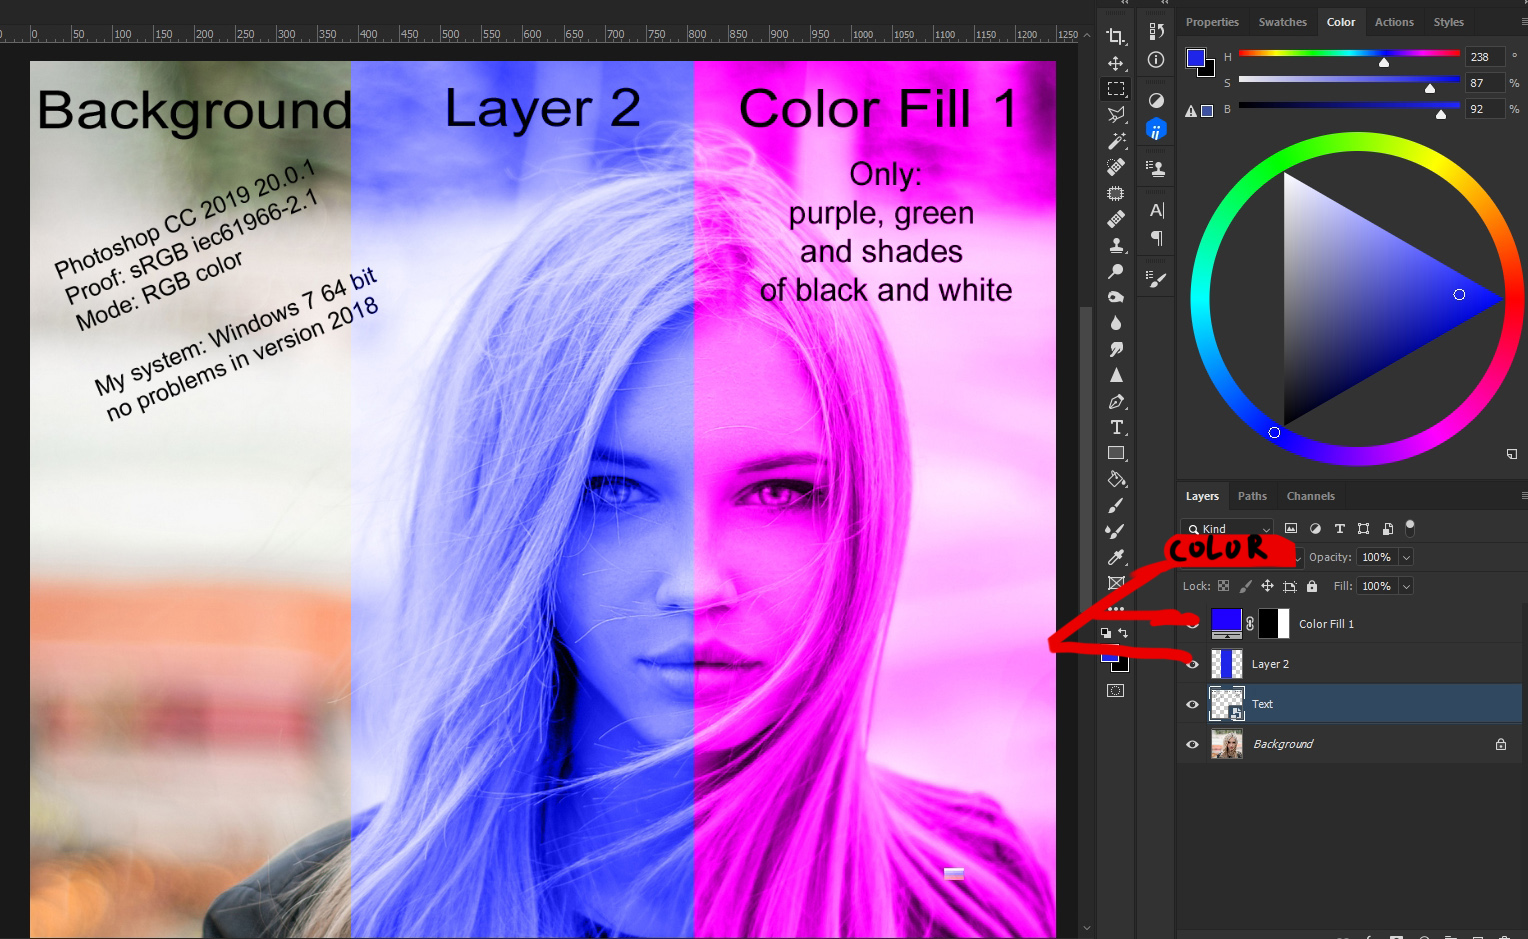 Screenshot_cc2019 Blend mode color errors.jpg